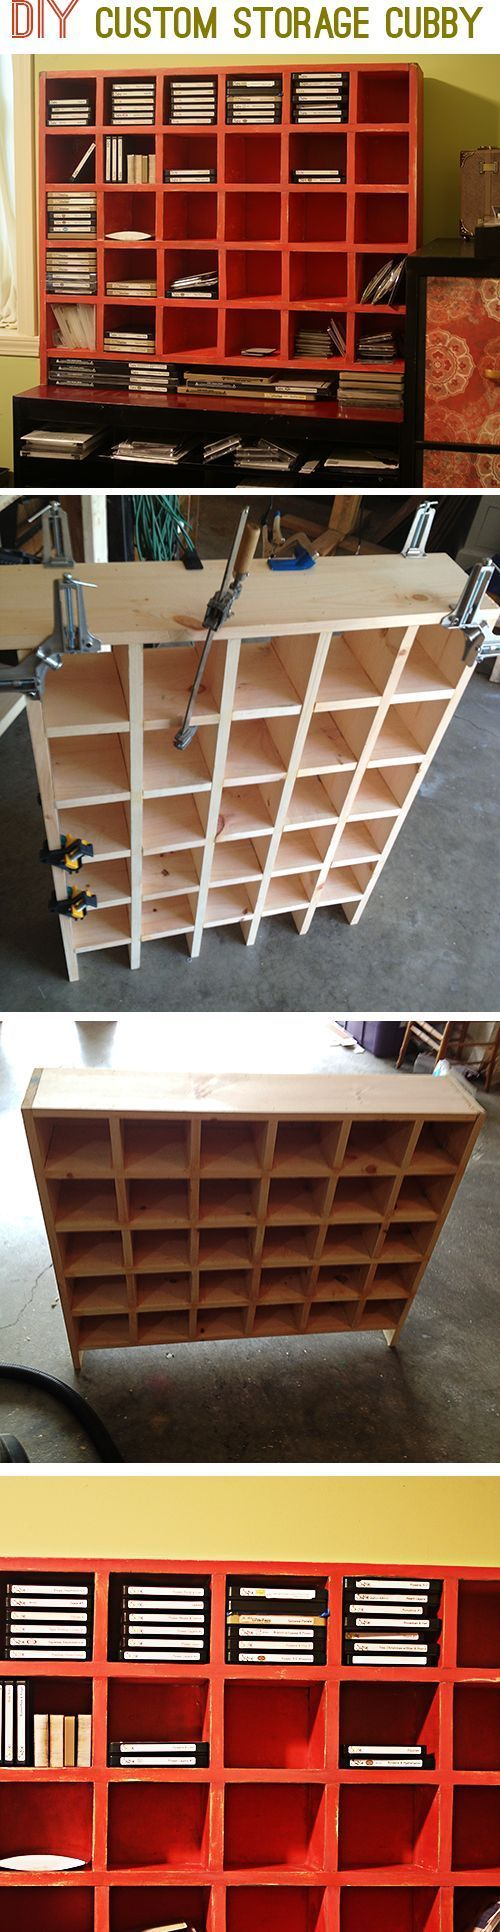 Build a custom DIY storage cubby unit for your craft supplies or a DIY book case